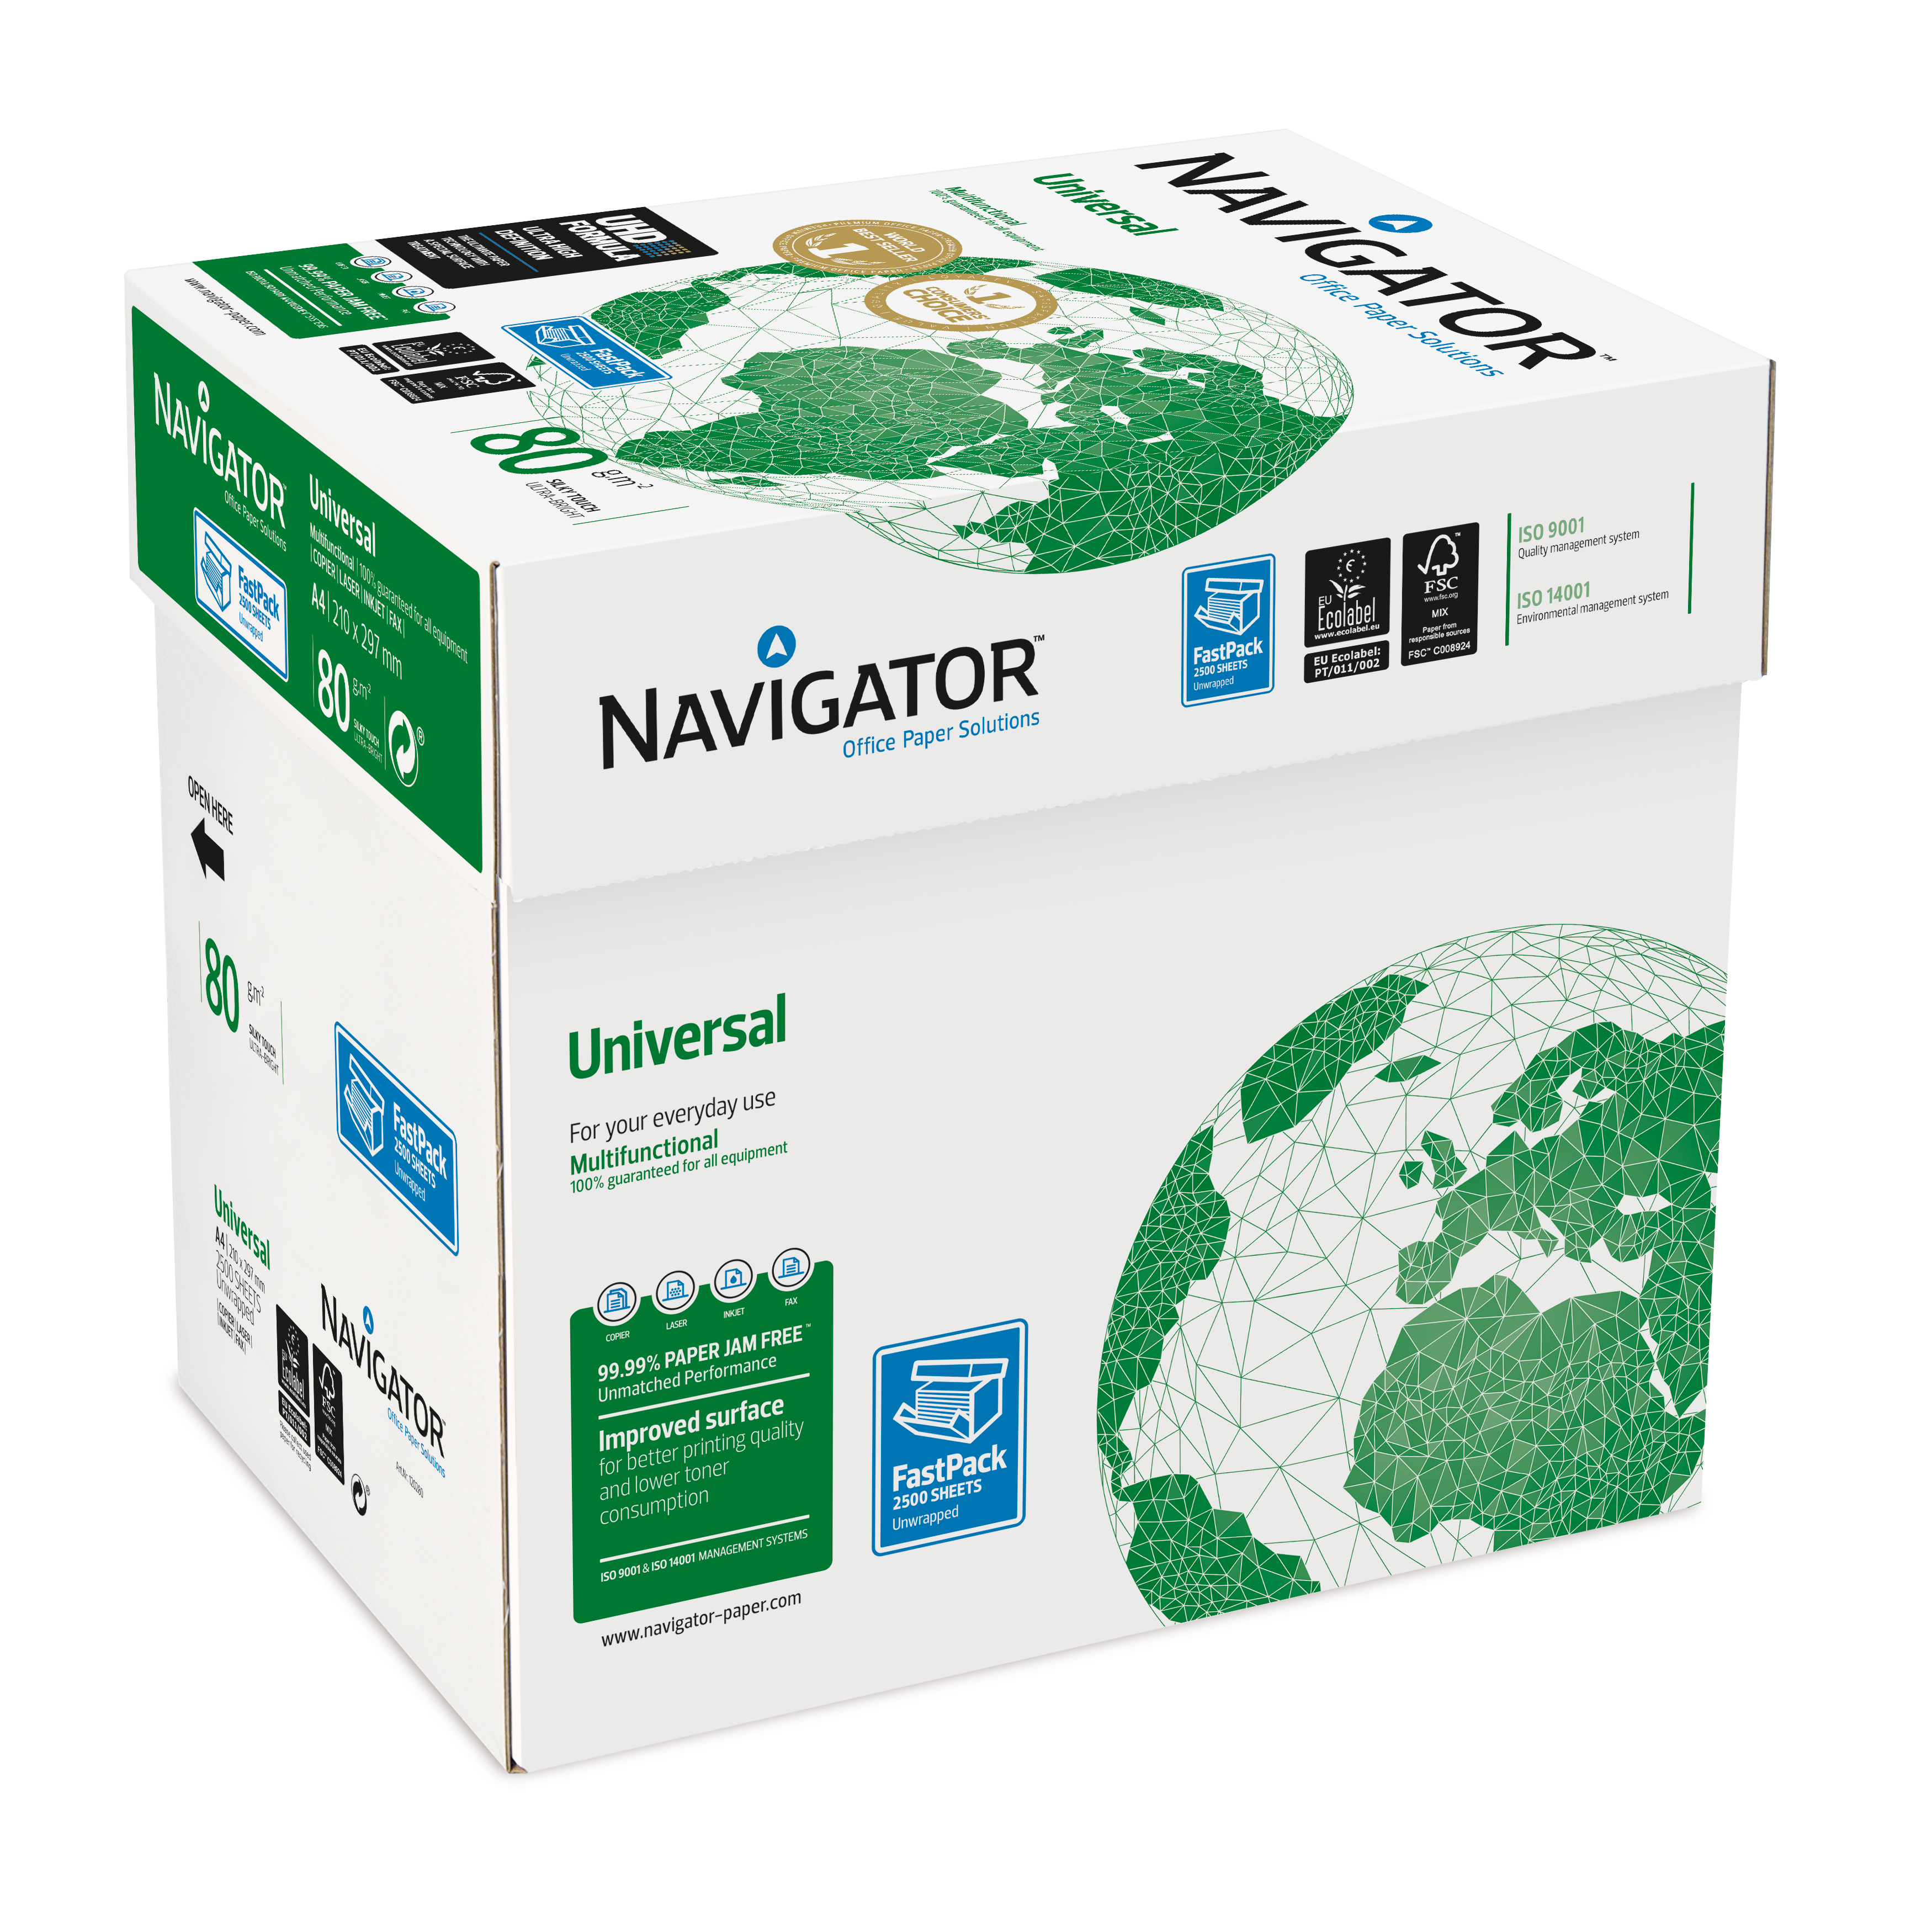 Navigator Universal Paper Multifunctional 80gsm A4 Fast PackWht Ref127565[2500Shts]